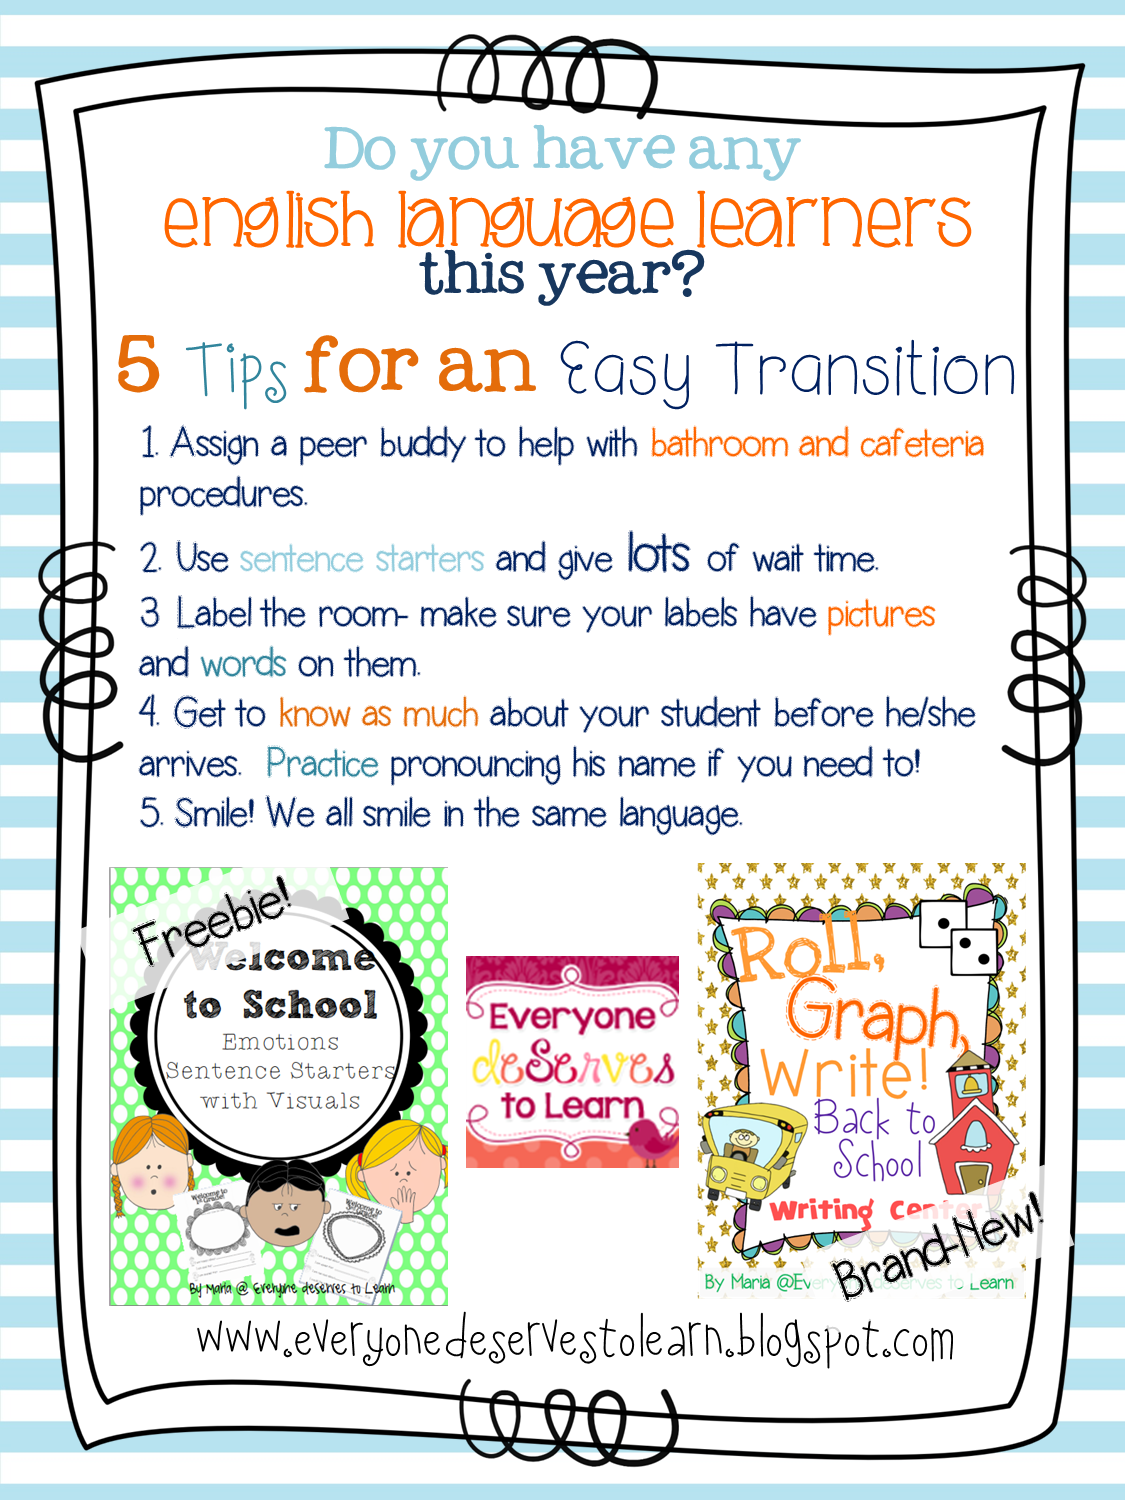 Back to School with English Language Learners